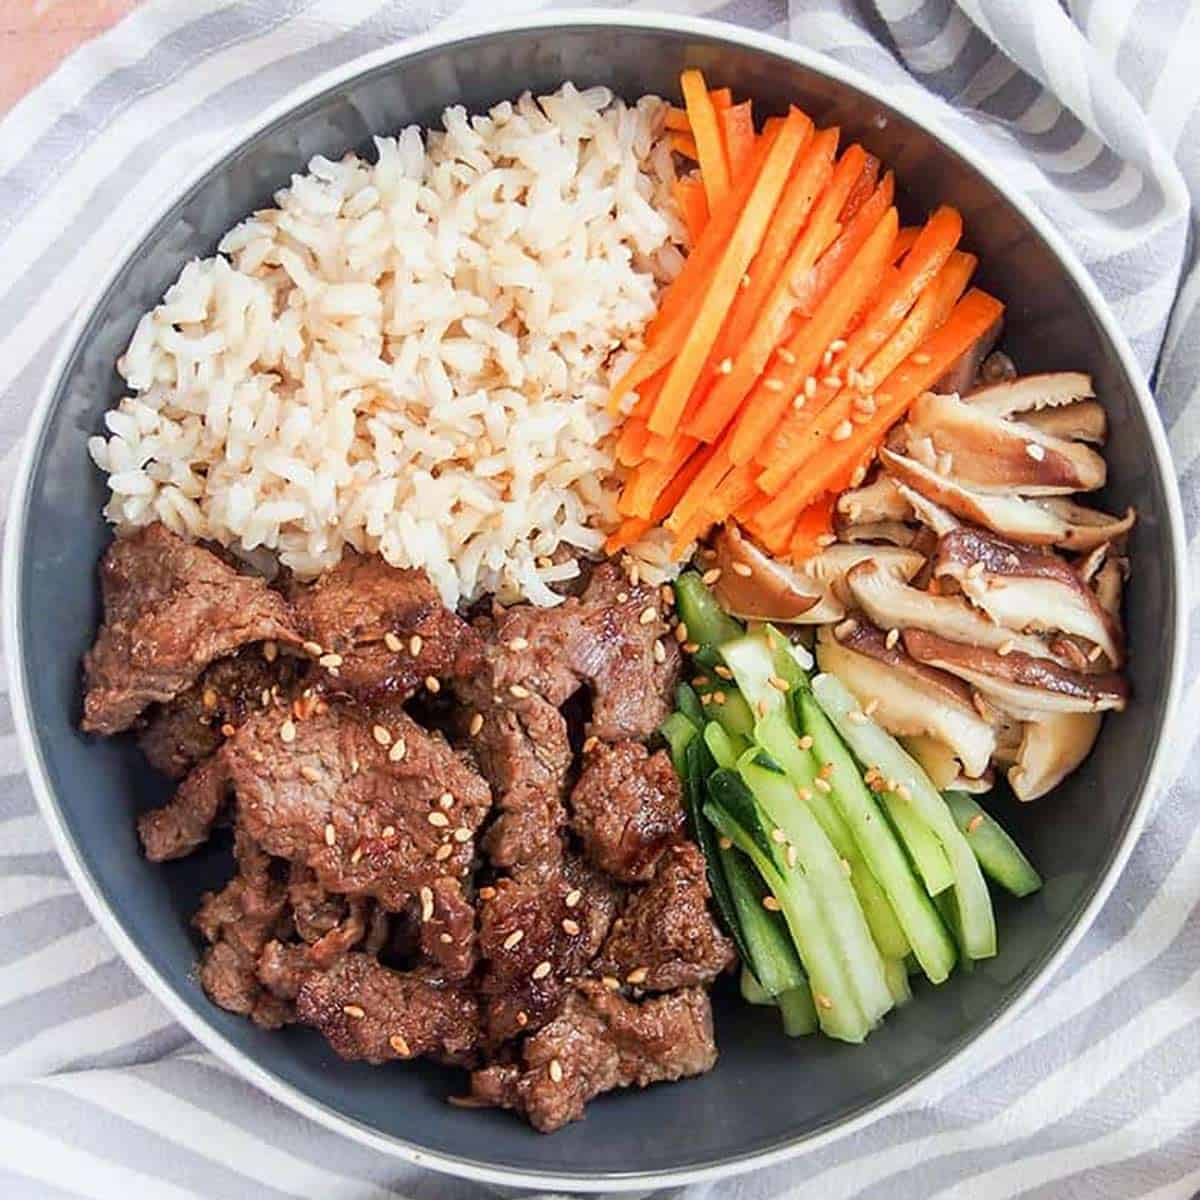 A bowl of Korean beef bulgogi with carrots, cucumbers, mushrooms and rice